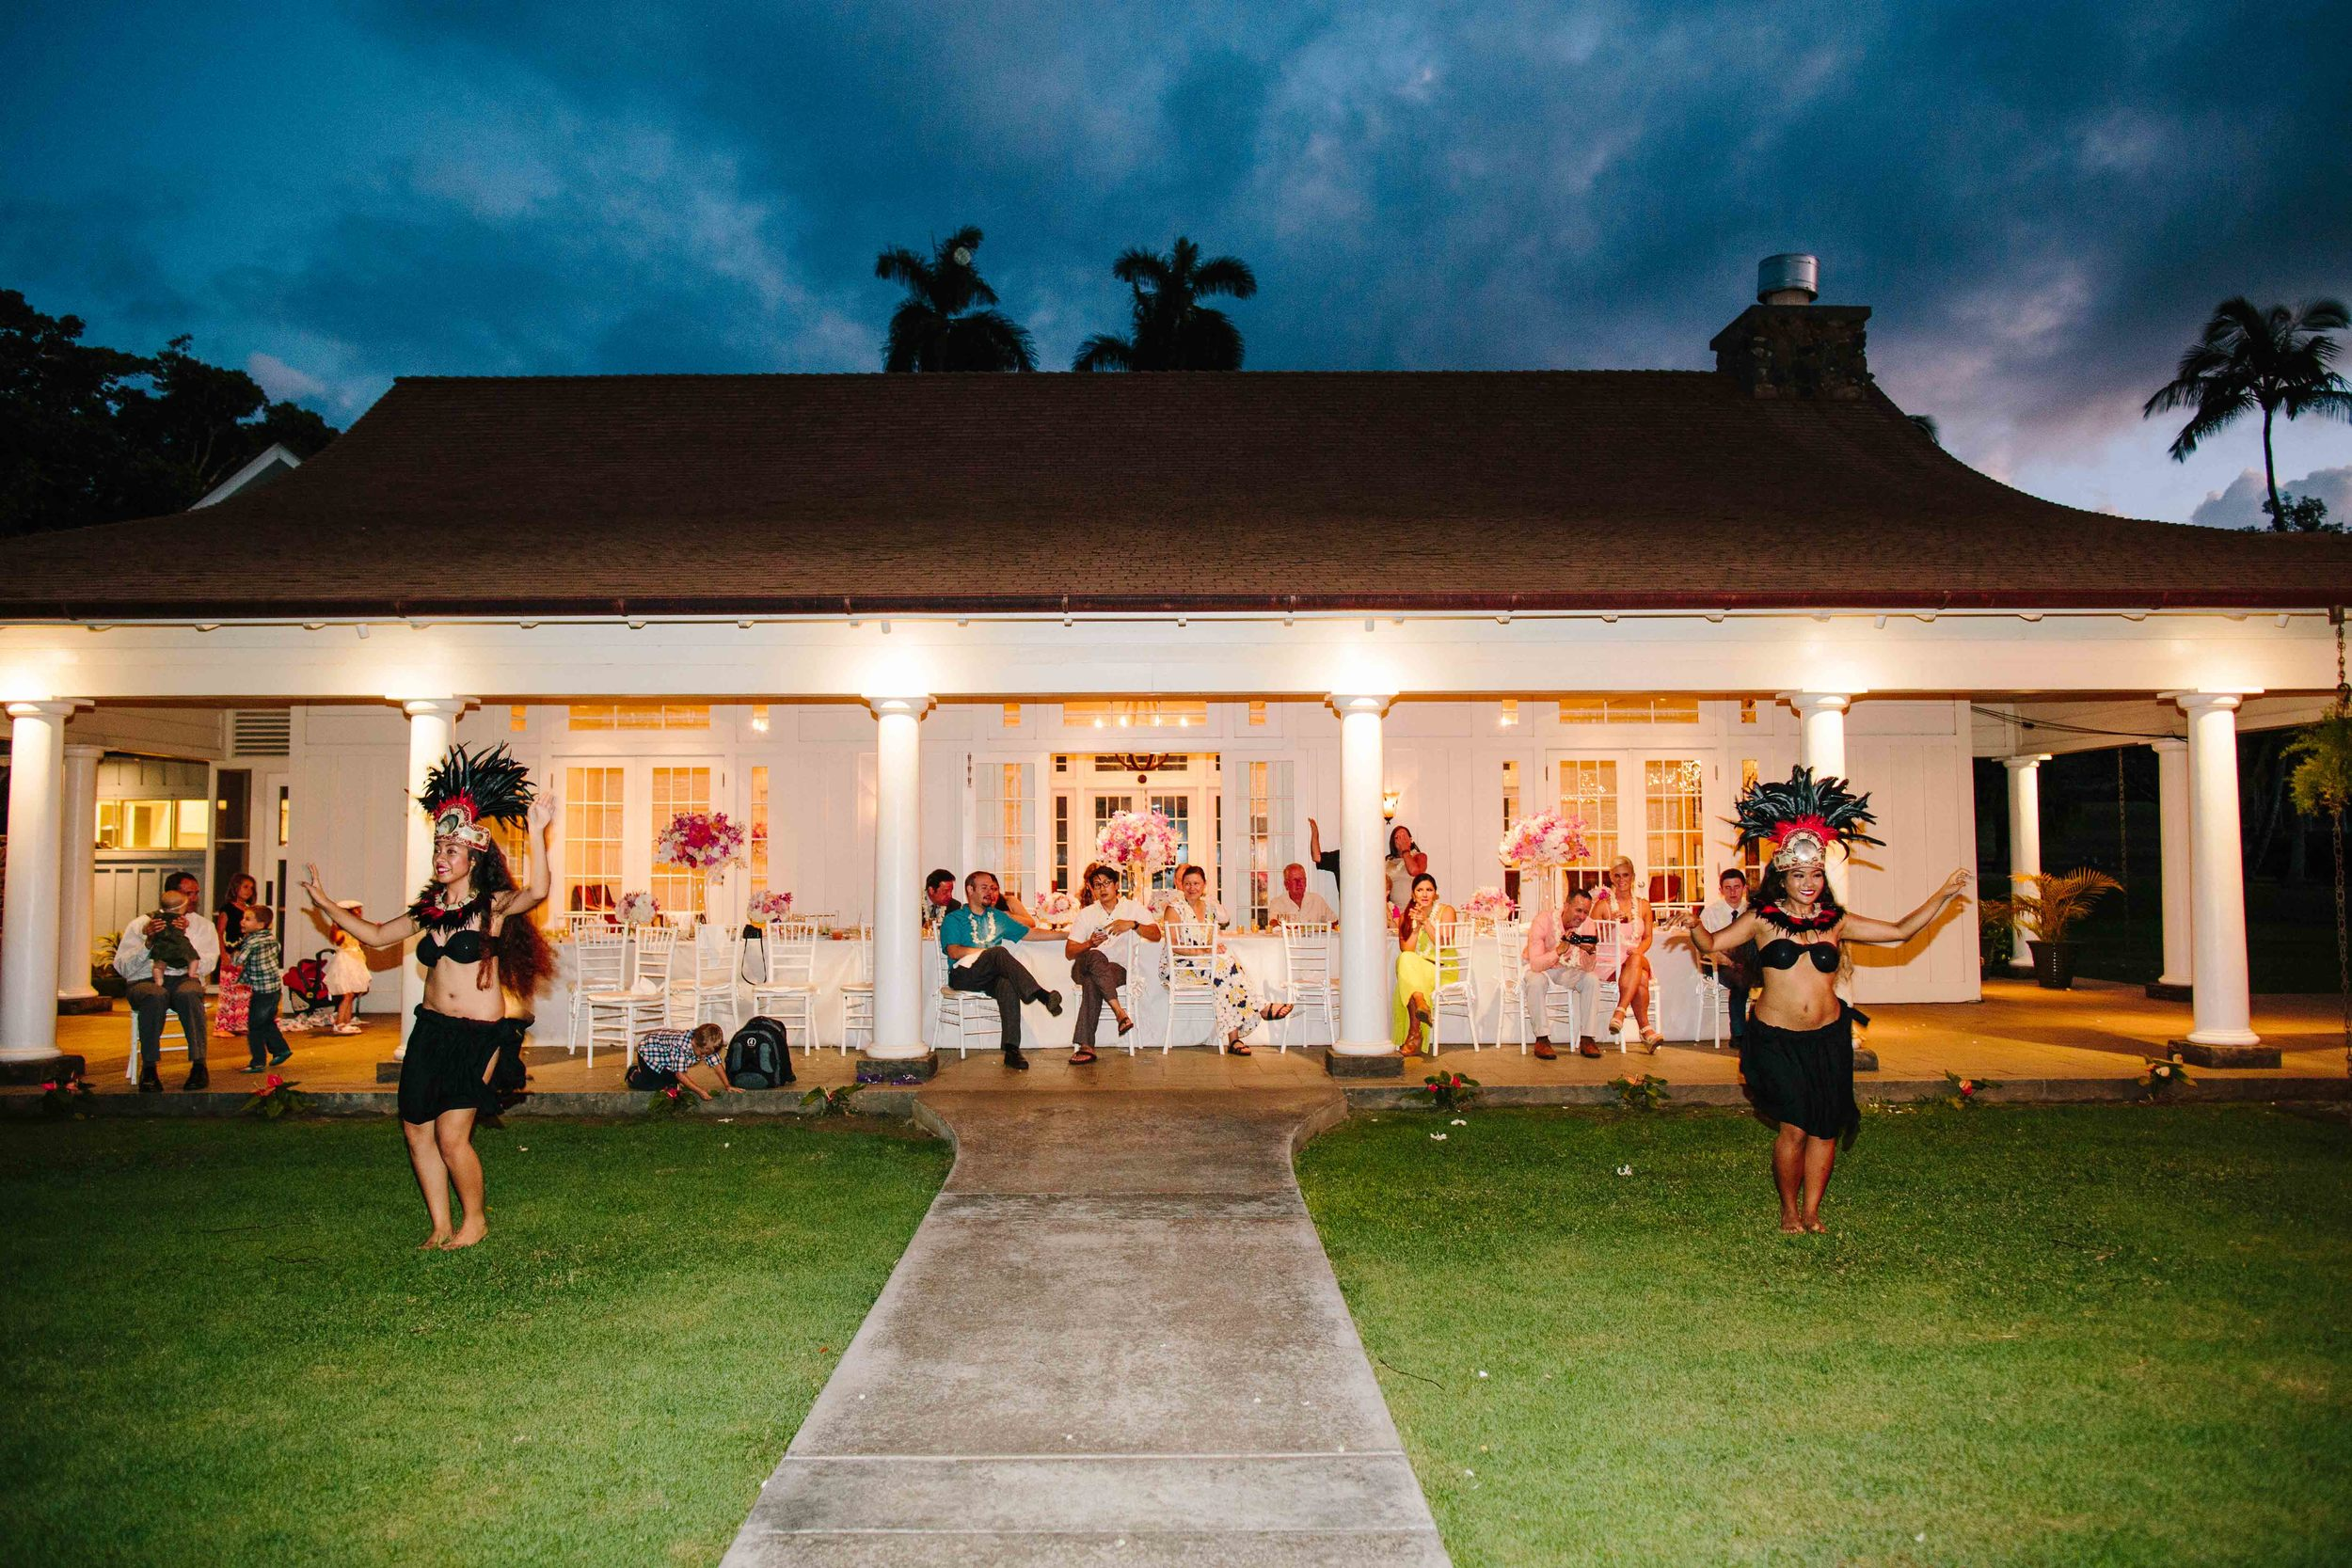 Evening Event at Dillingham Ranch